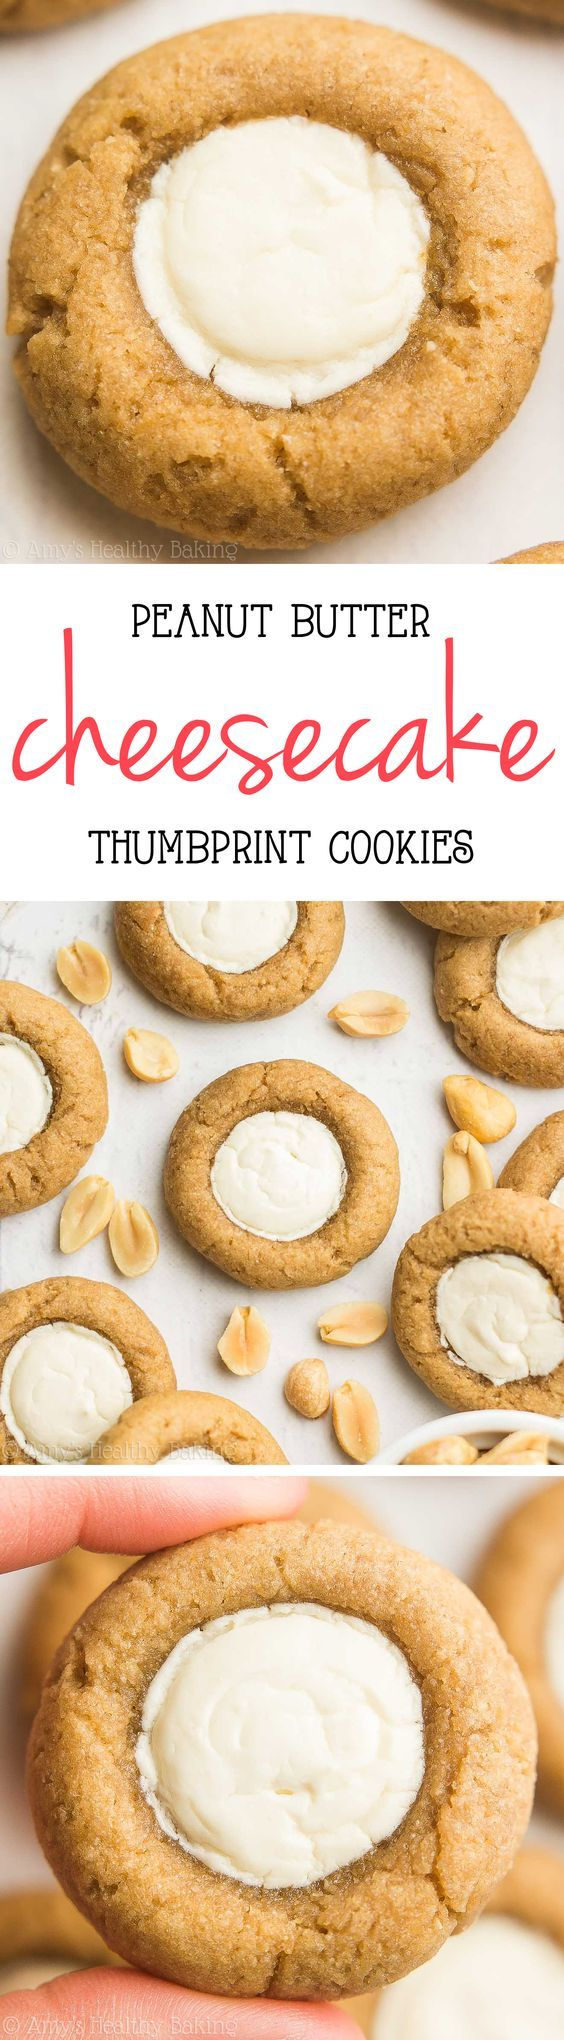 Skinny Peanut Butter Cheesecake Thumbprint Cookies -- this healthy recipe is AMAZING! So easy and just 54 calories!